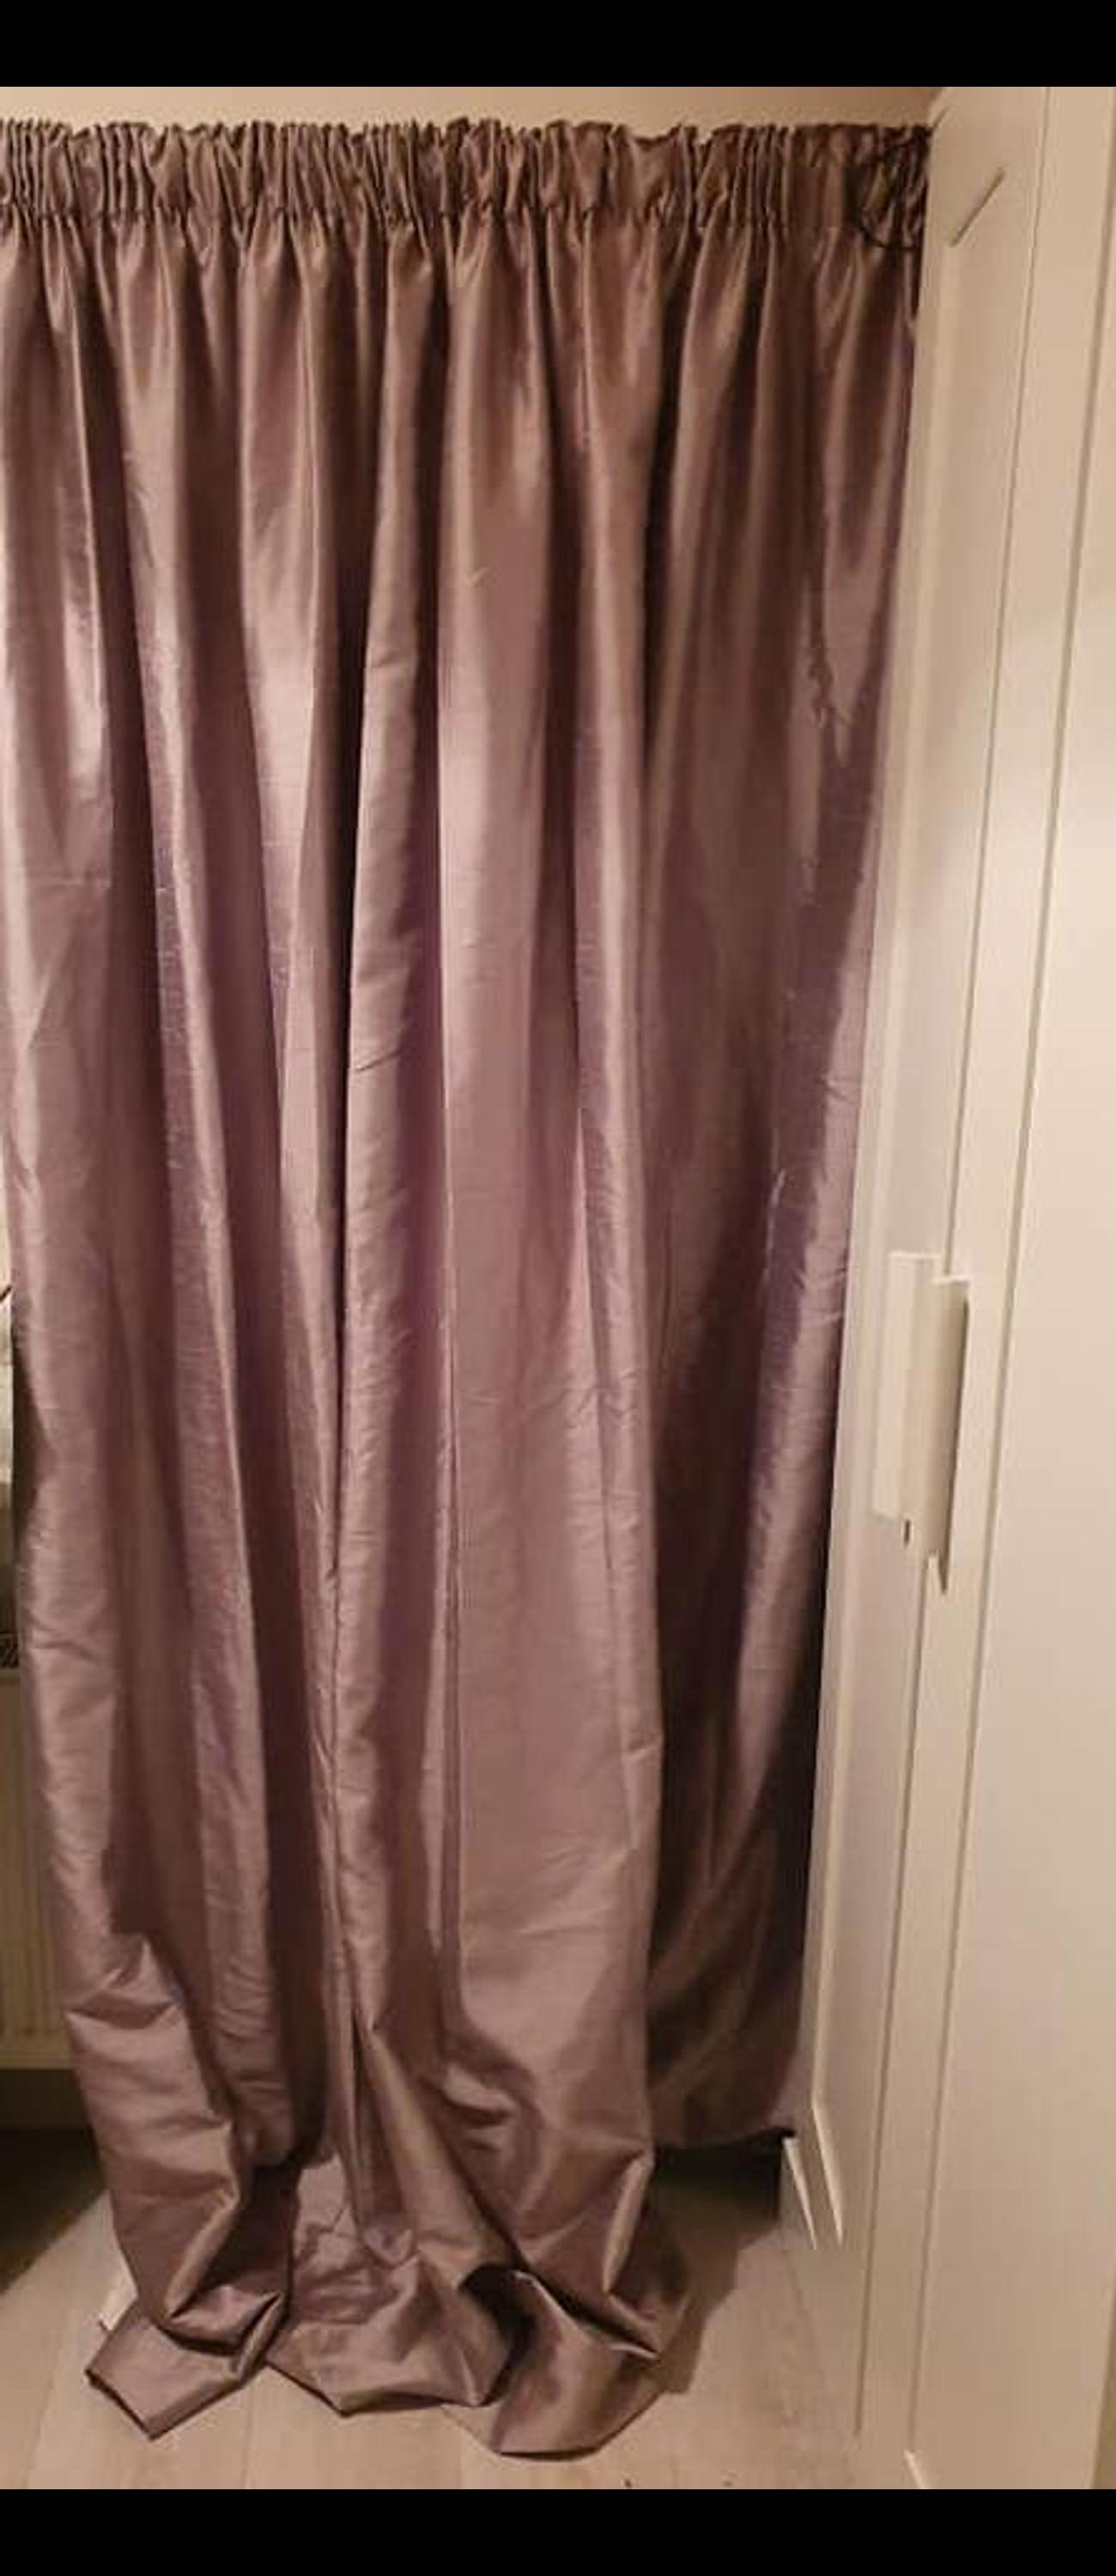 This curtains are a lovely grey but tints to colour if your room are lined pinch pleat 90x 90 I have two pairs, I also have cream curtain light pair for summer and heavy pair for winter, white voiles and more please come have a look.. looking for decent price £50 ono